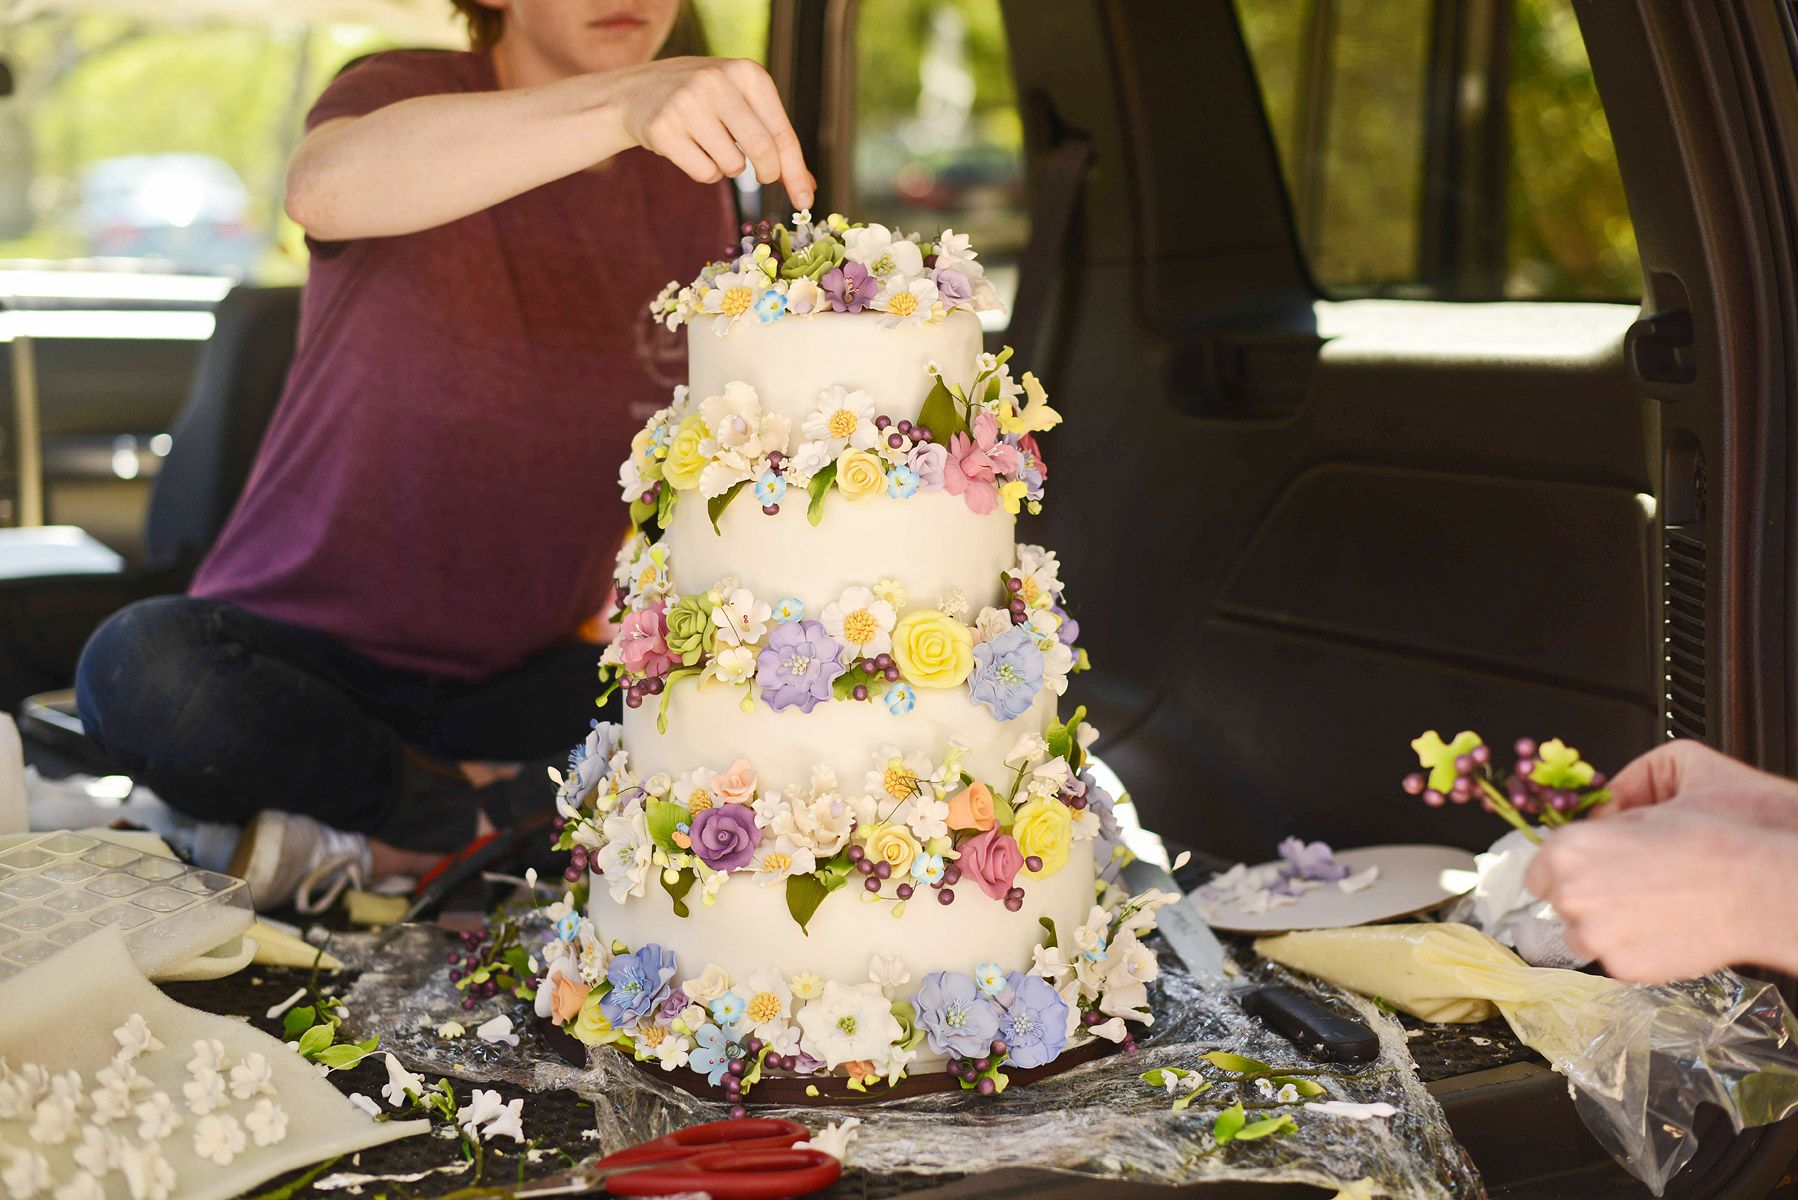 The wedding cake included one vegan tier for the groom weddingz